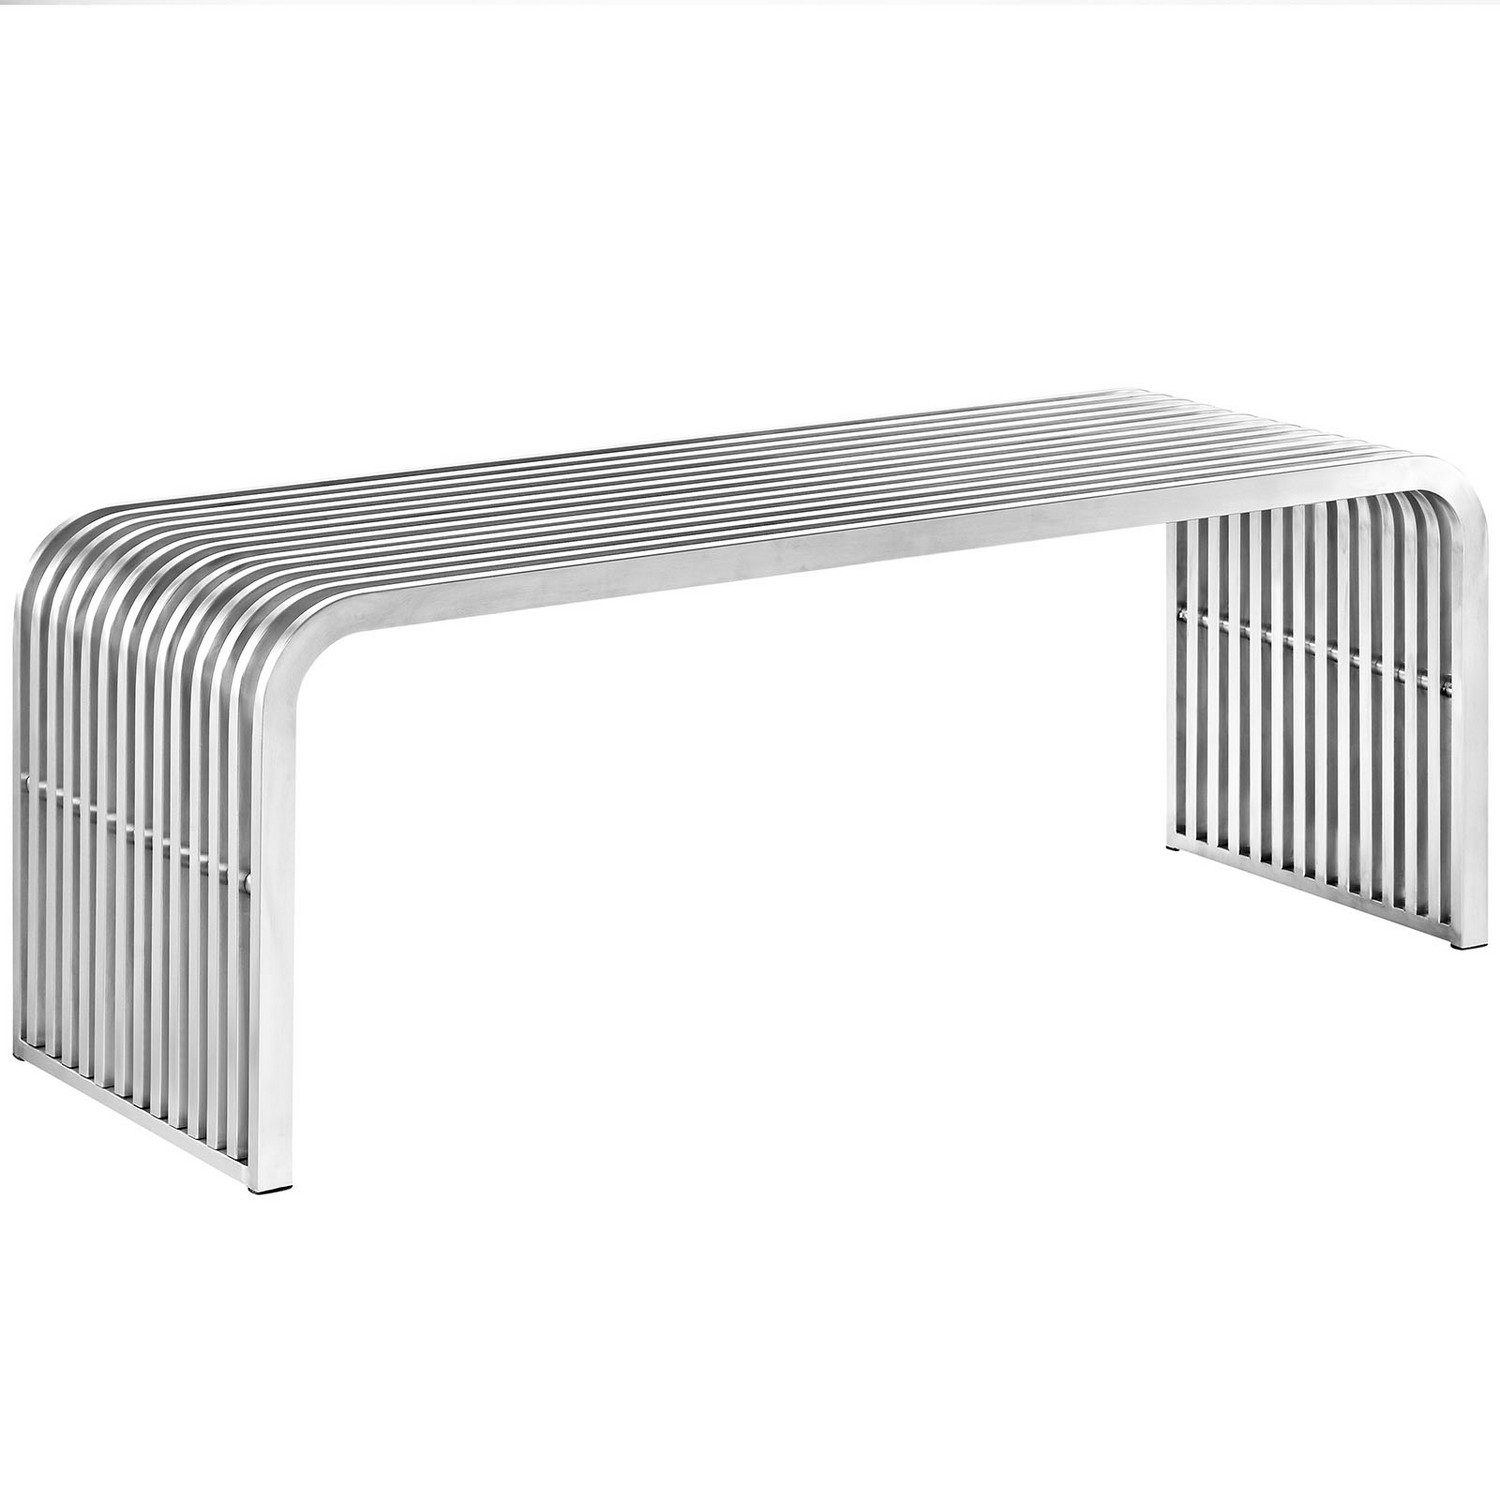 Modway Pipe Stainless Steel Bench - Silver